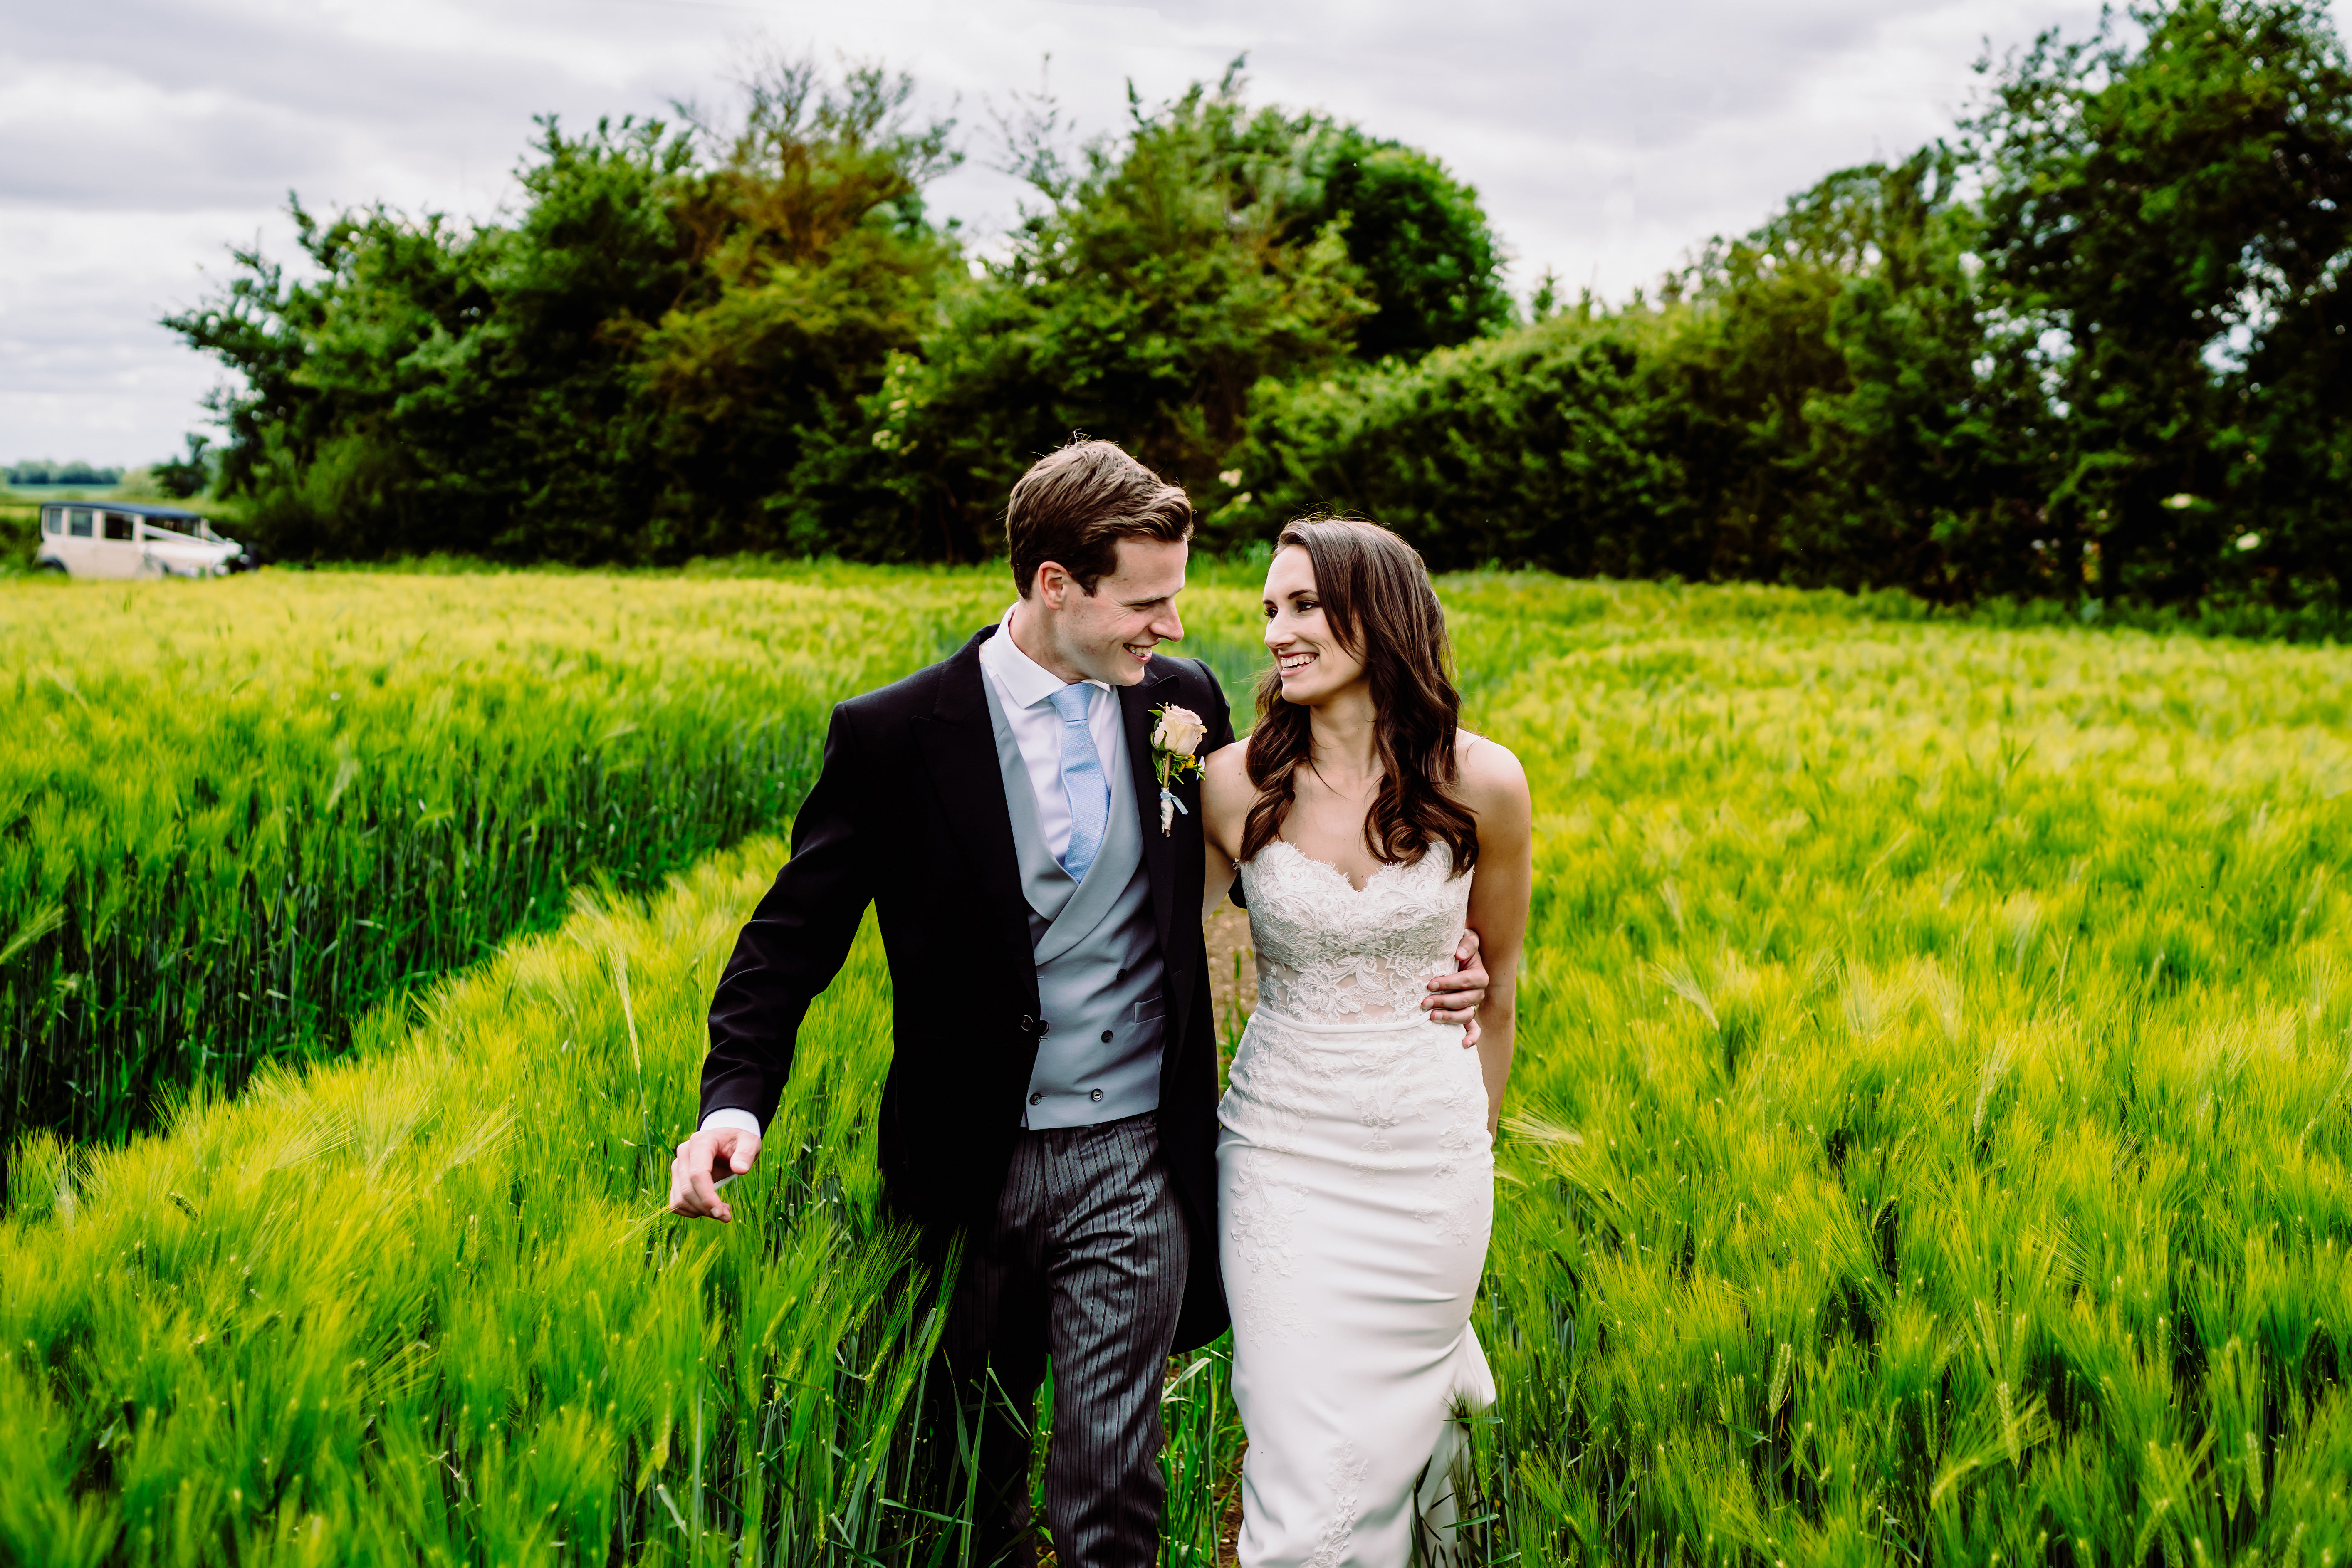 wedding photography by elliot w patching photography